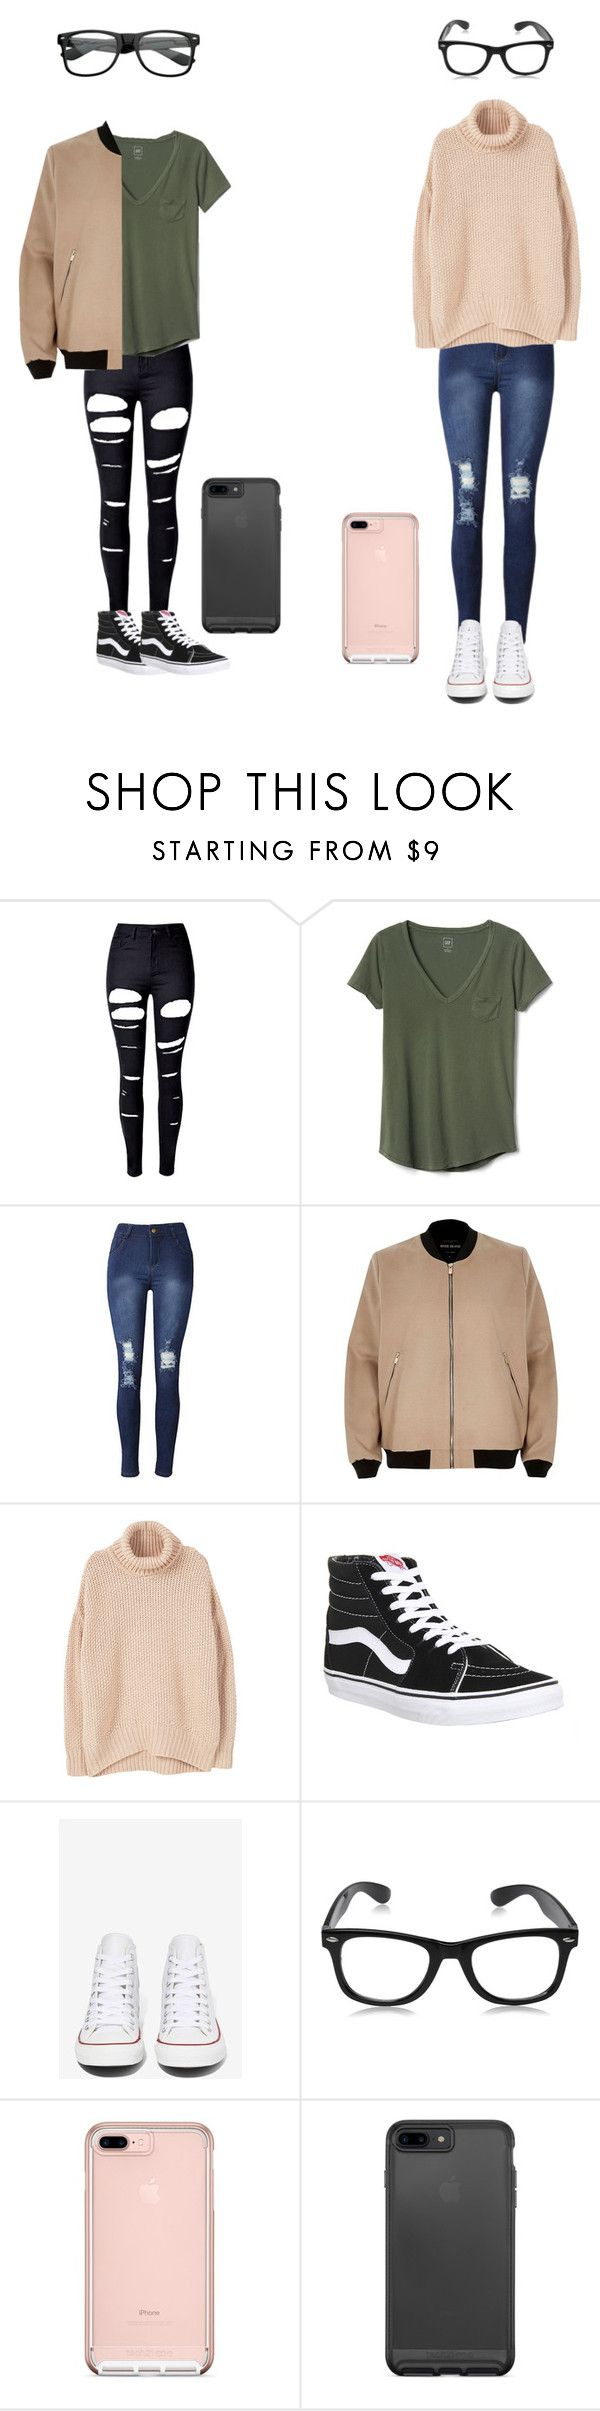 """Color coordinating"" by roxas-lightwood on Polyvore featuring WithChic, Gap, River Island, MANGO, Vans and Converse"